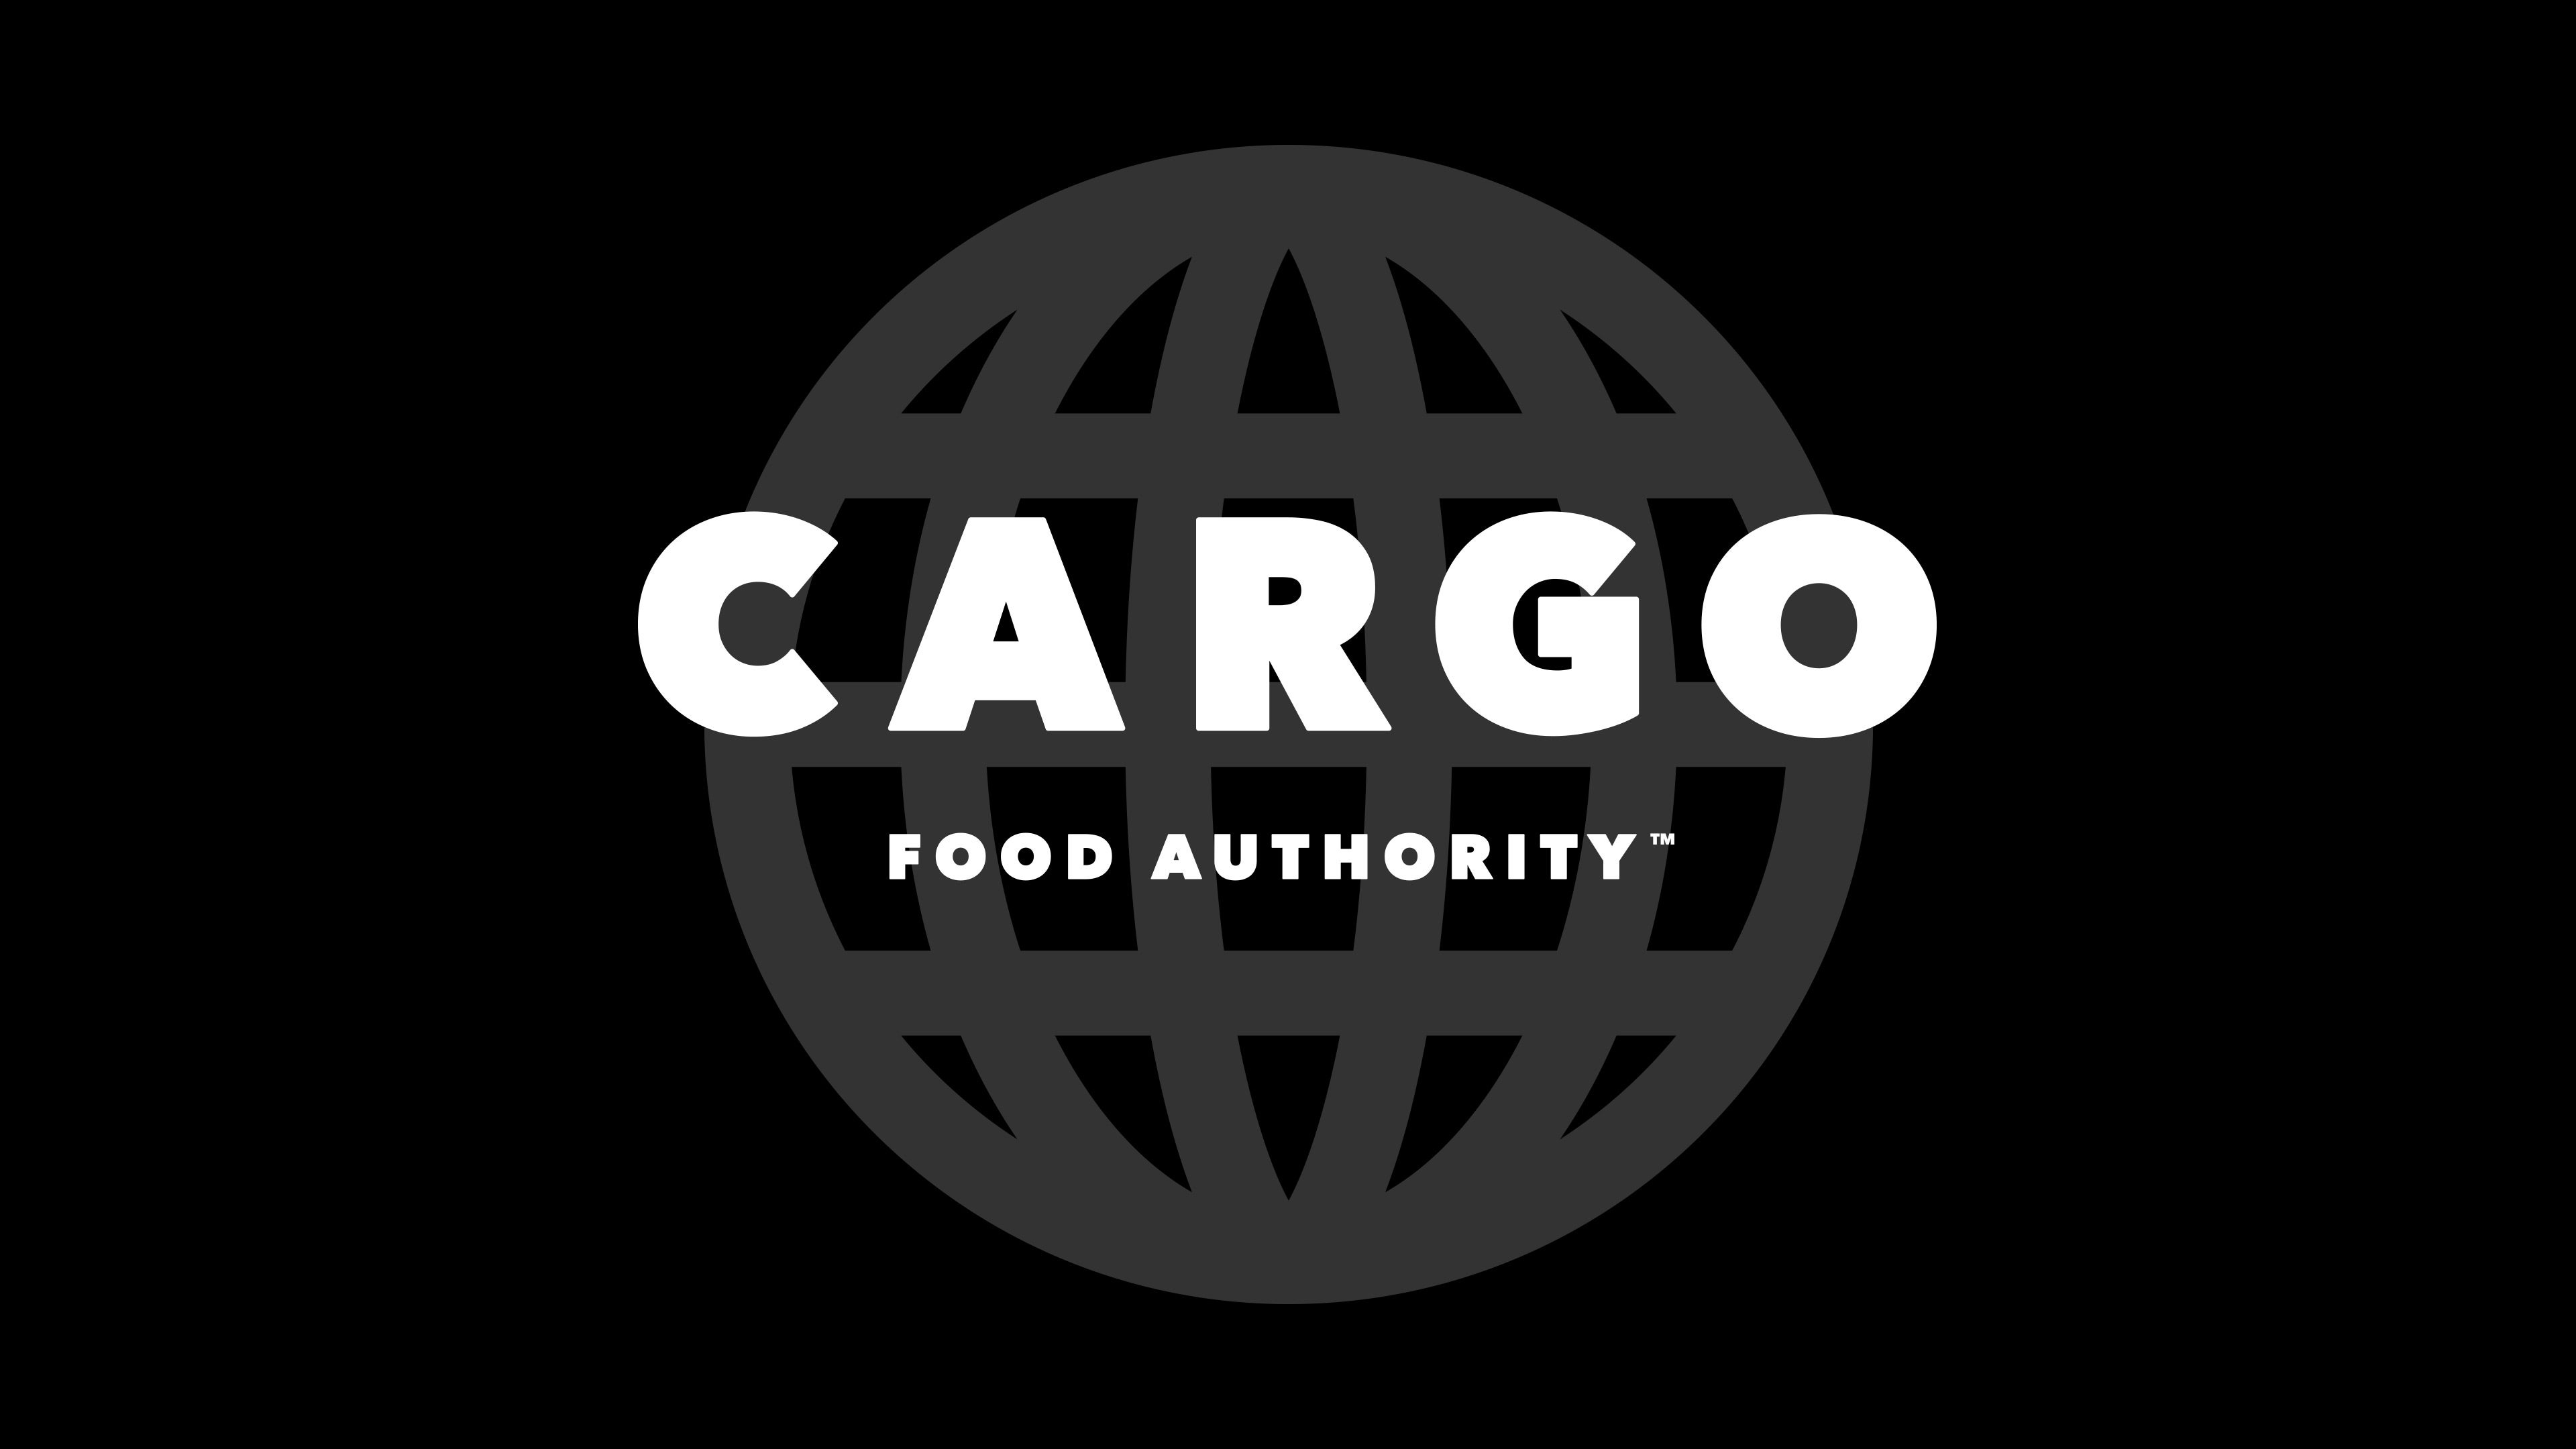 Cargo Food Authority